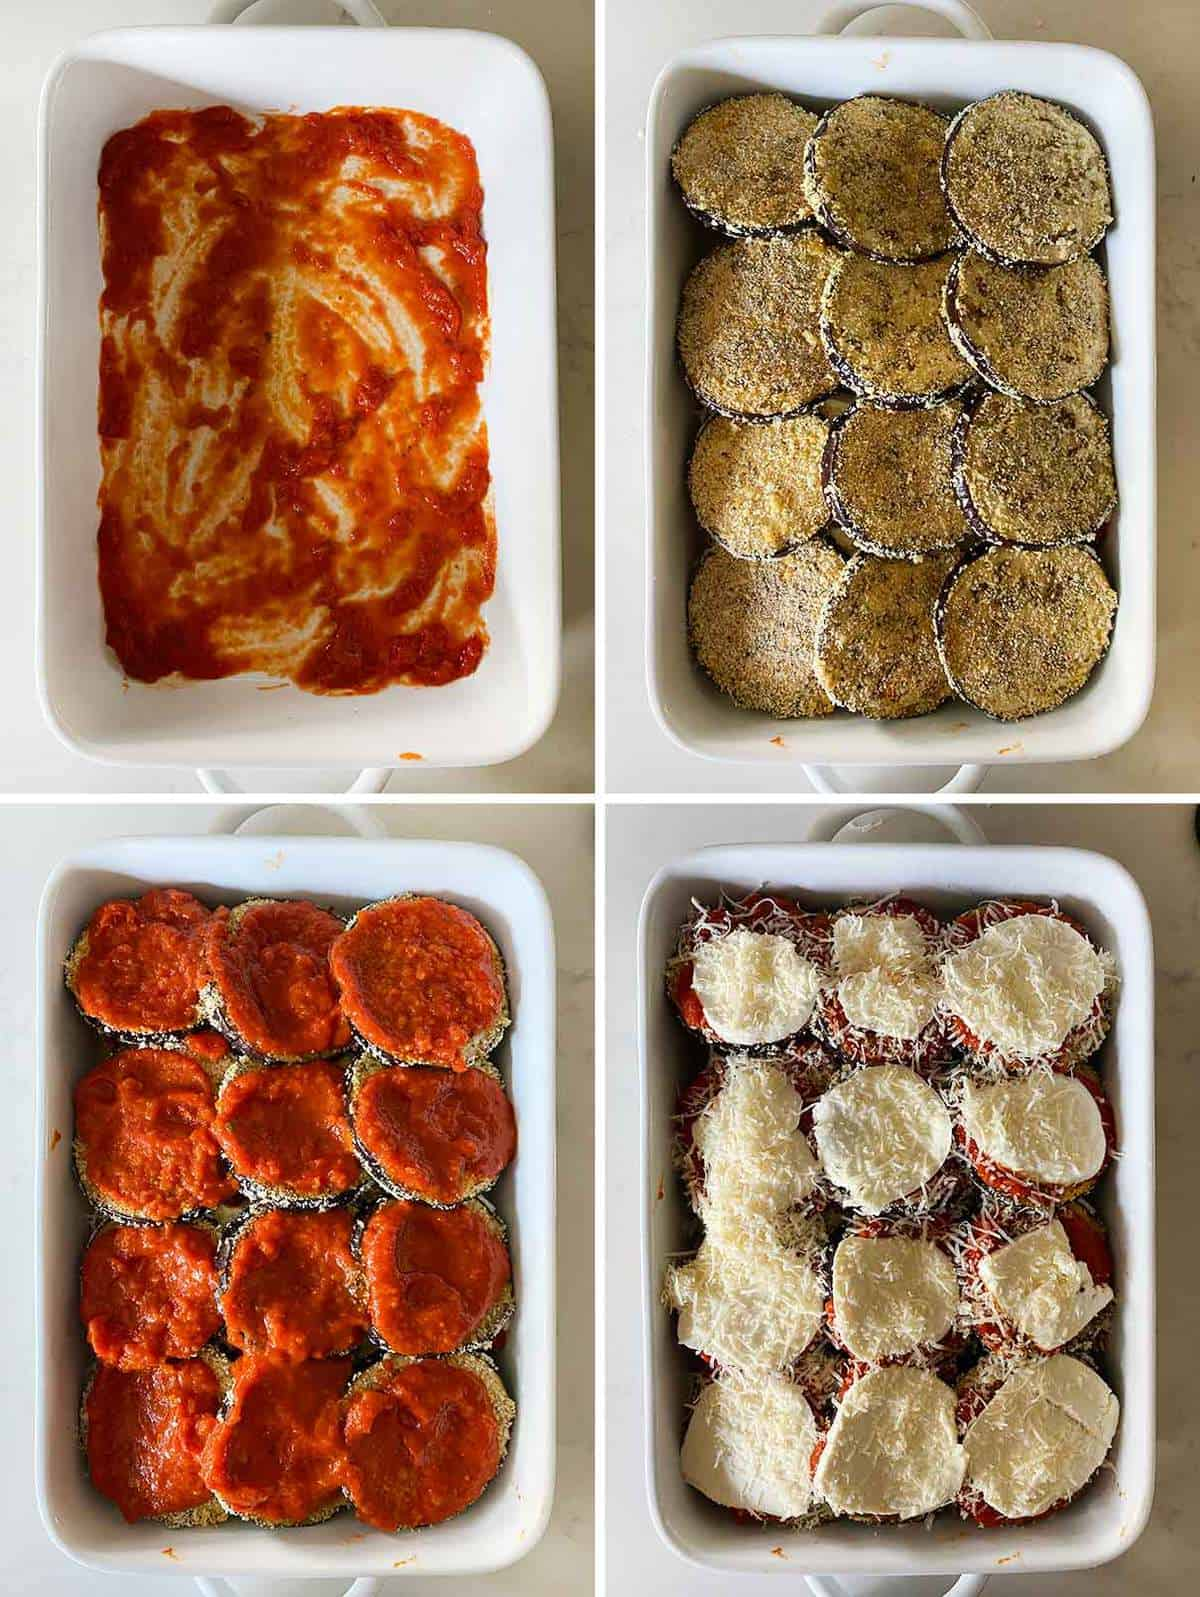 Process collage showing how to layer the parts of eggplant parmesan in a baking dish.